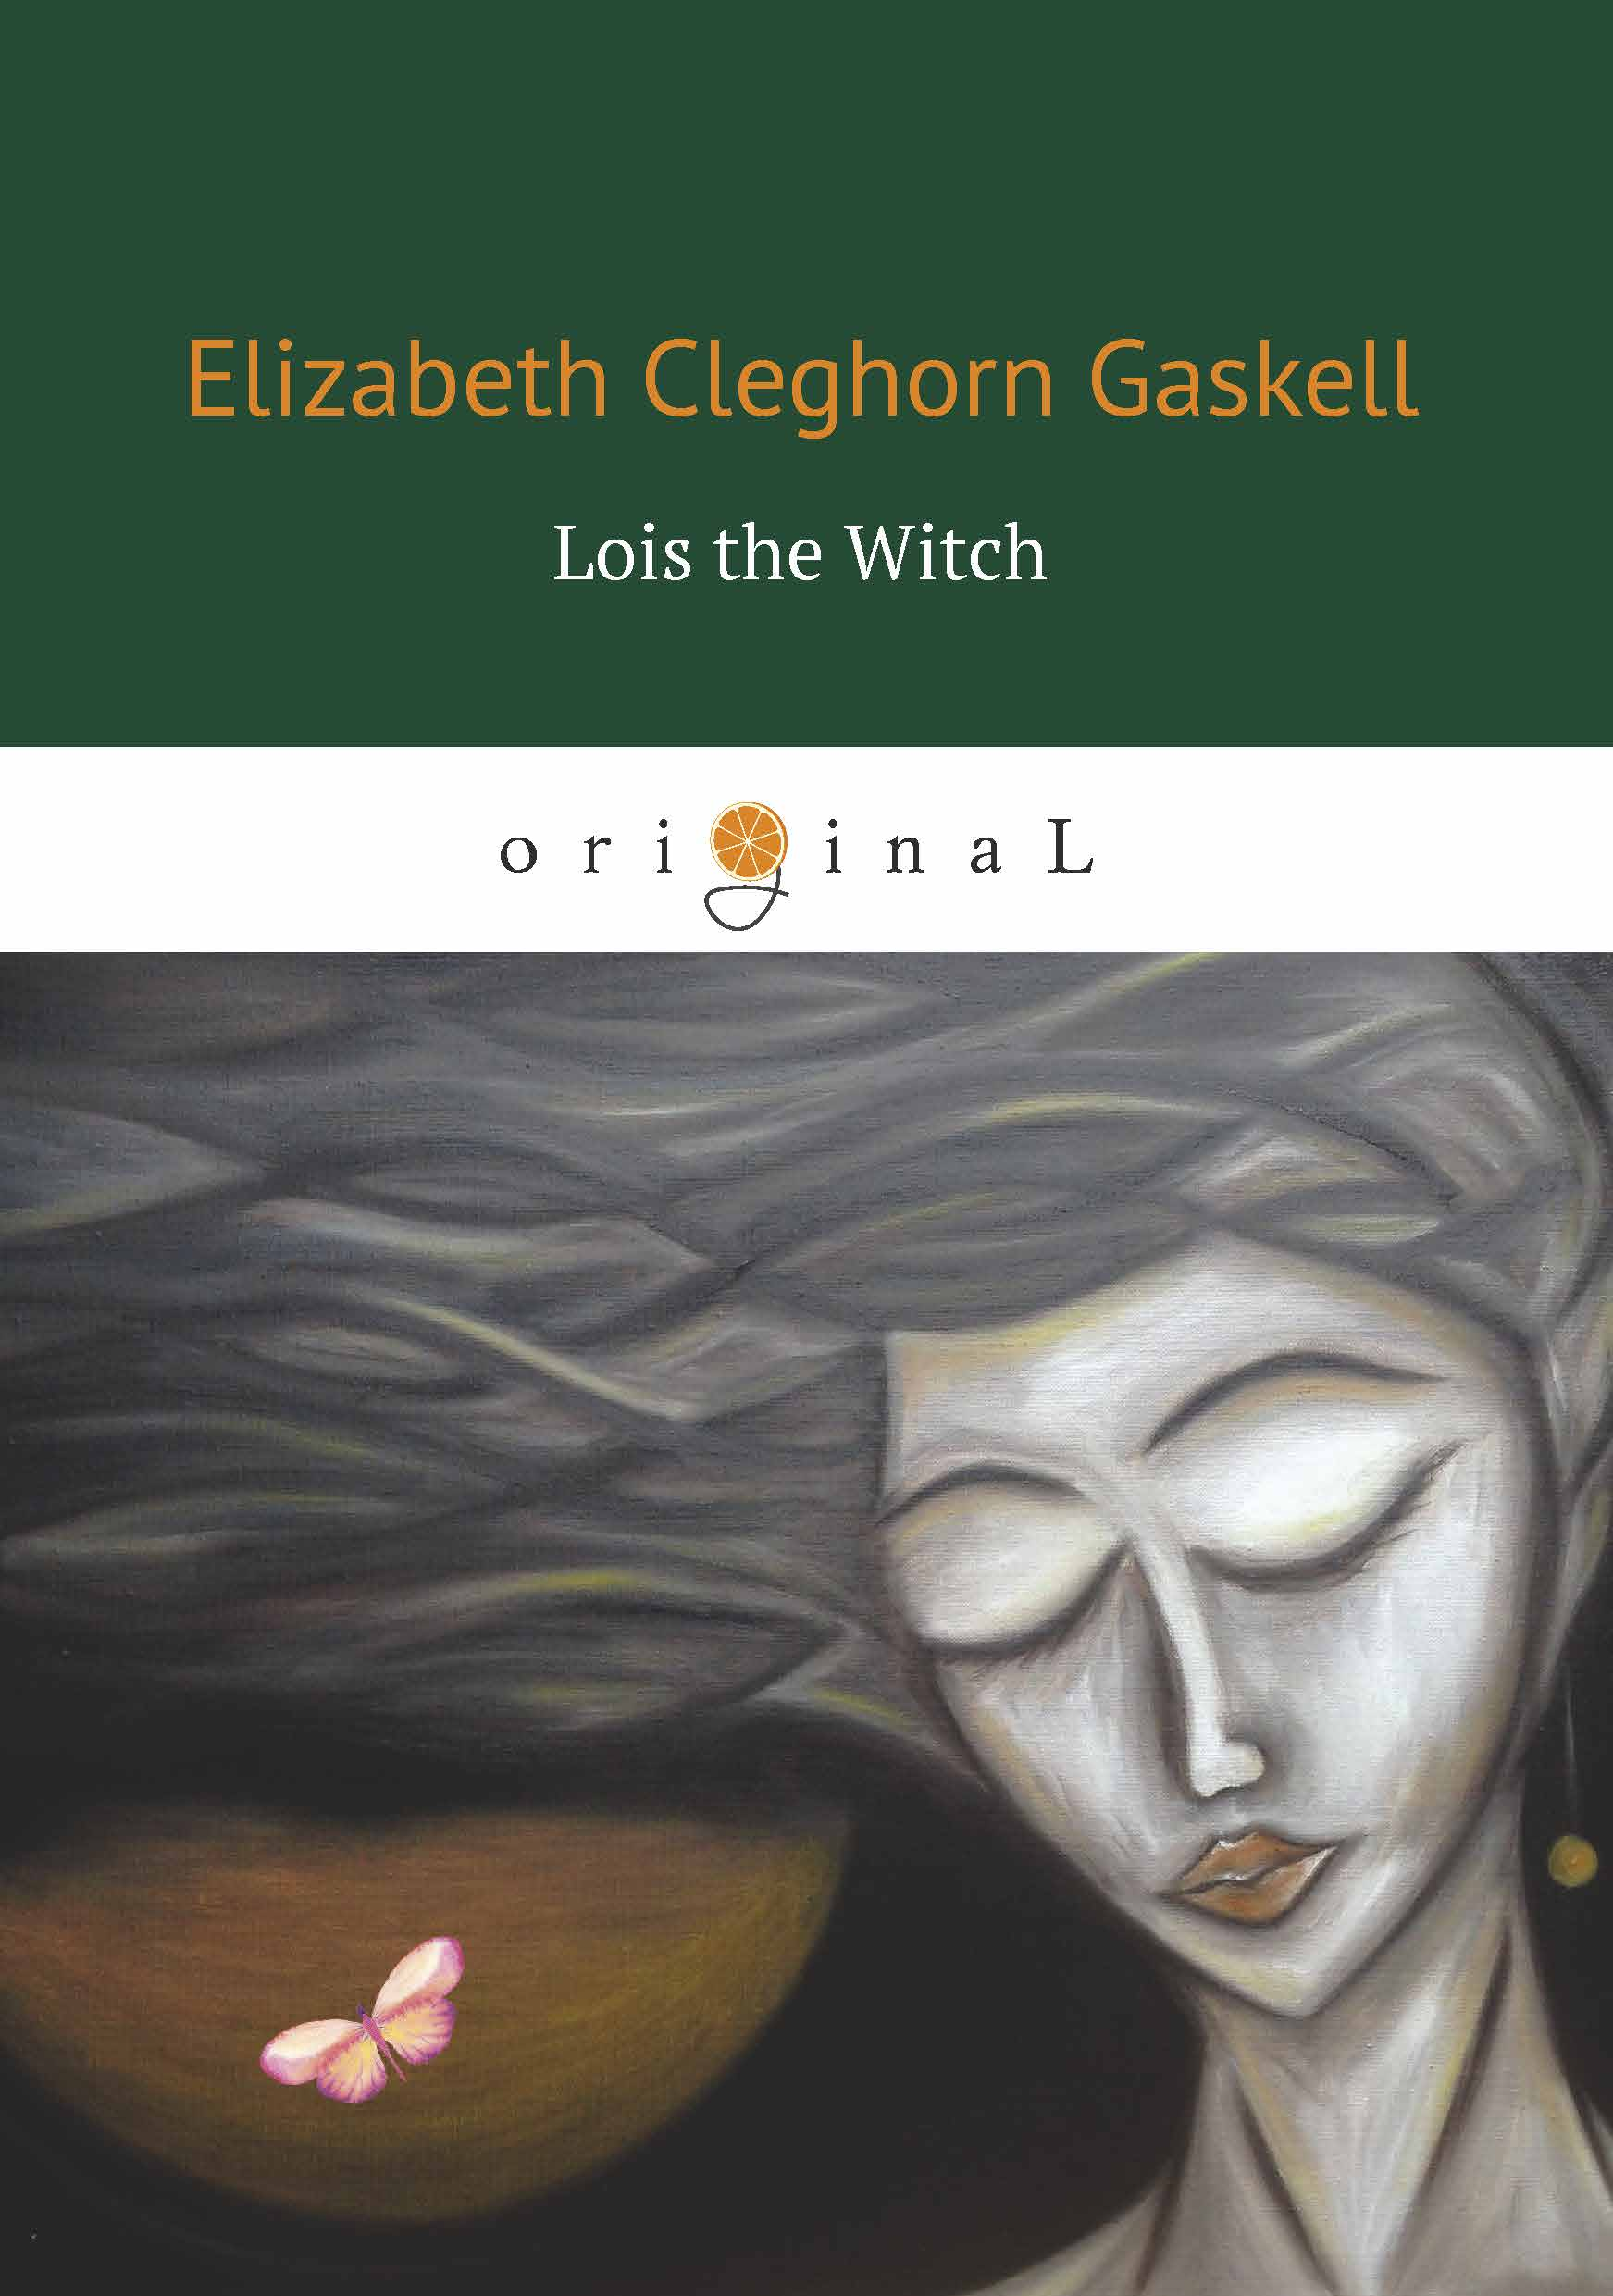 Elizabeth Cleghorn Gaskell Lois the Witch the wives military the military wives wherever you are – louise's story